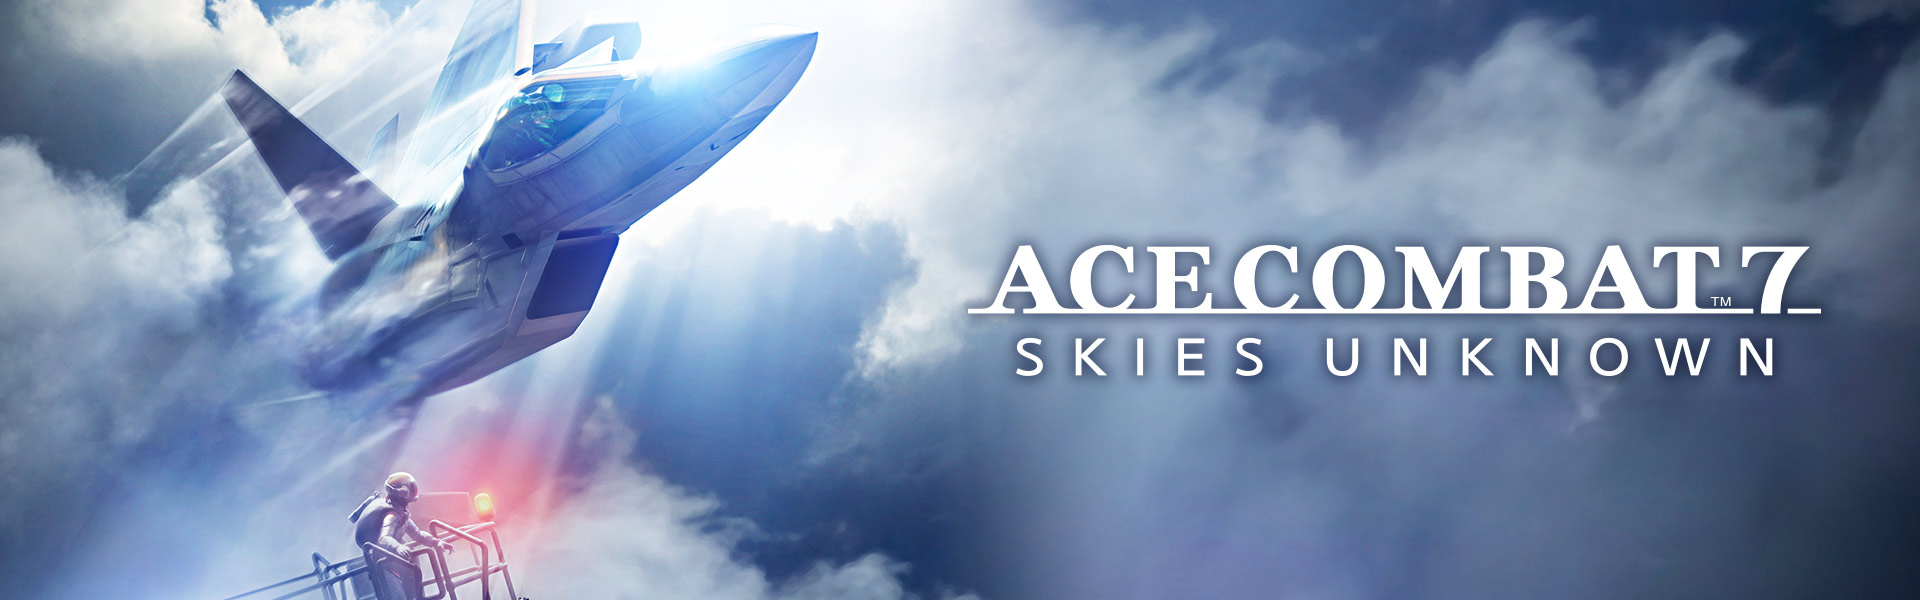 ACE COMBAT™ 7: SKIES UNKNOWN, fighter jet streaking through the clouds